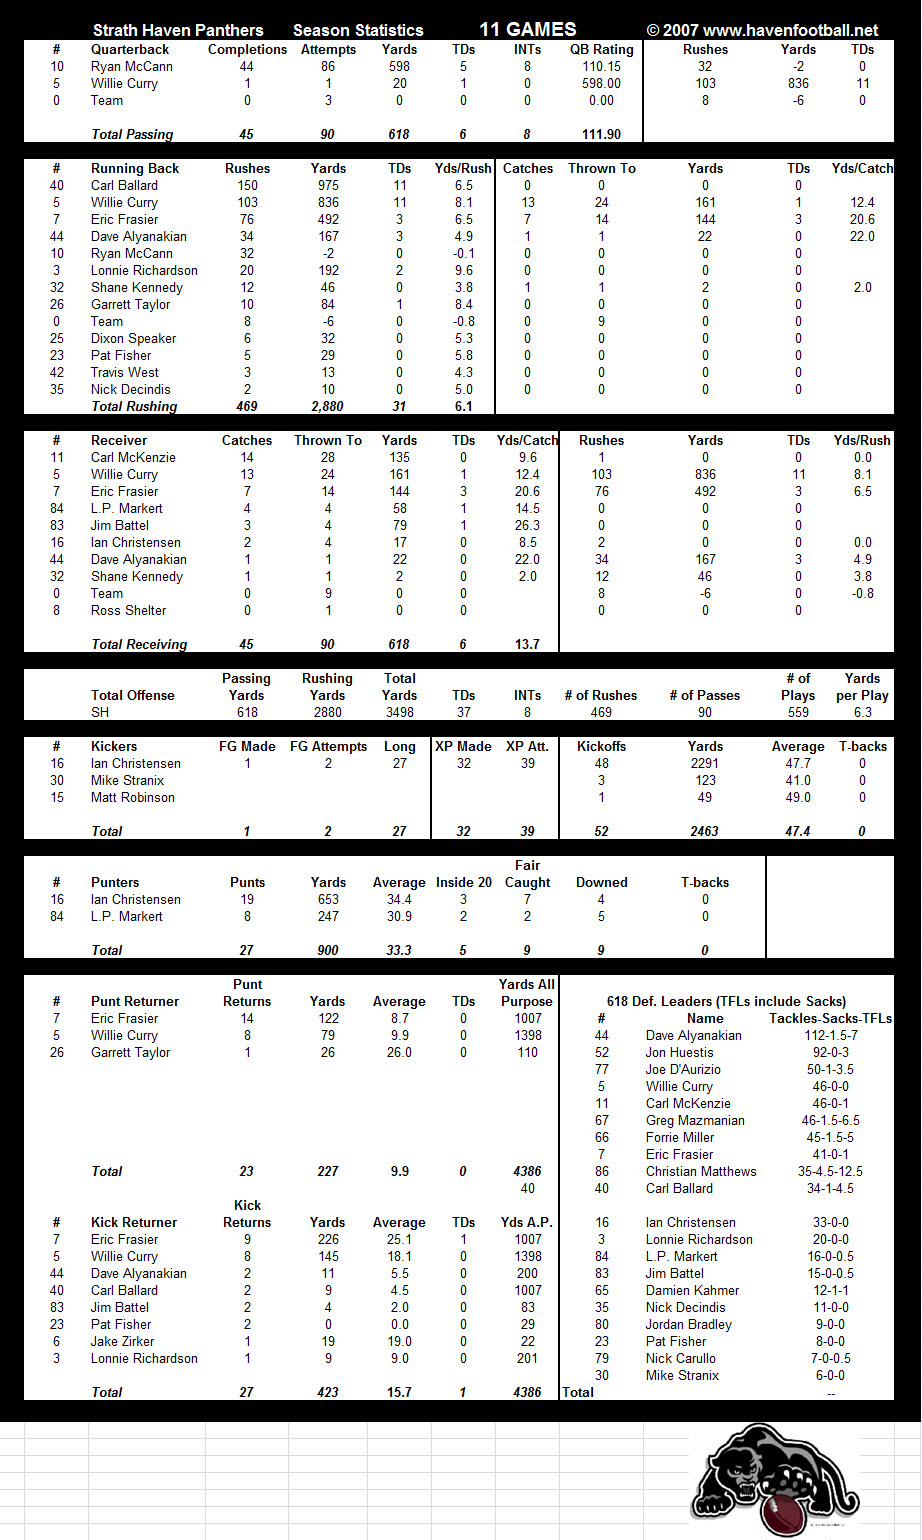 2007 Offensive Stats